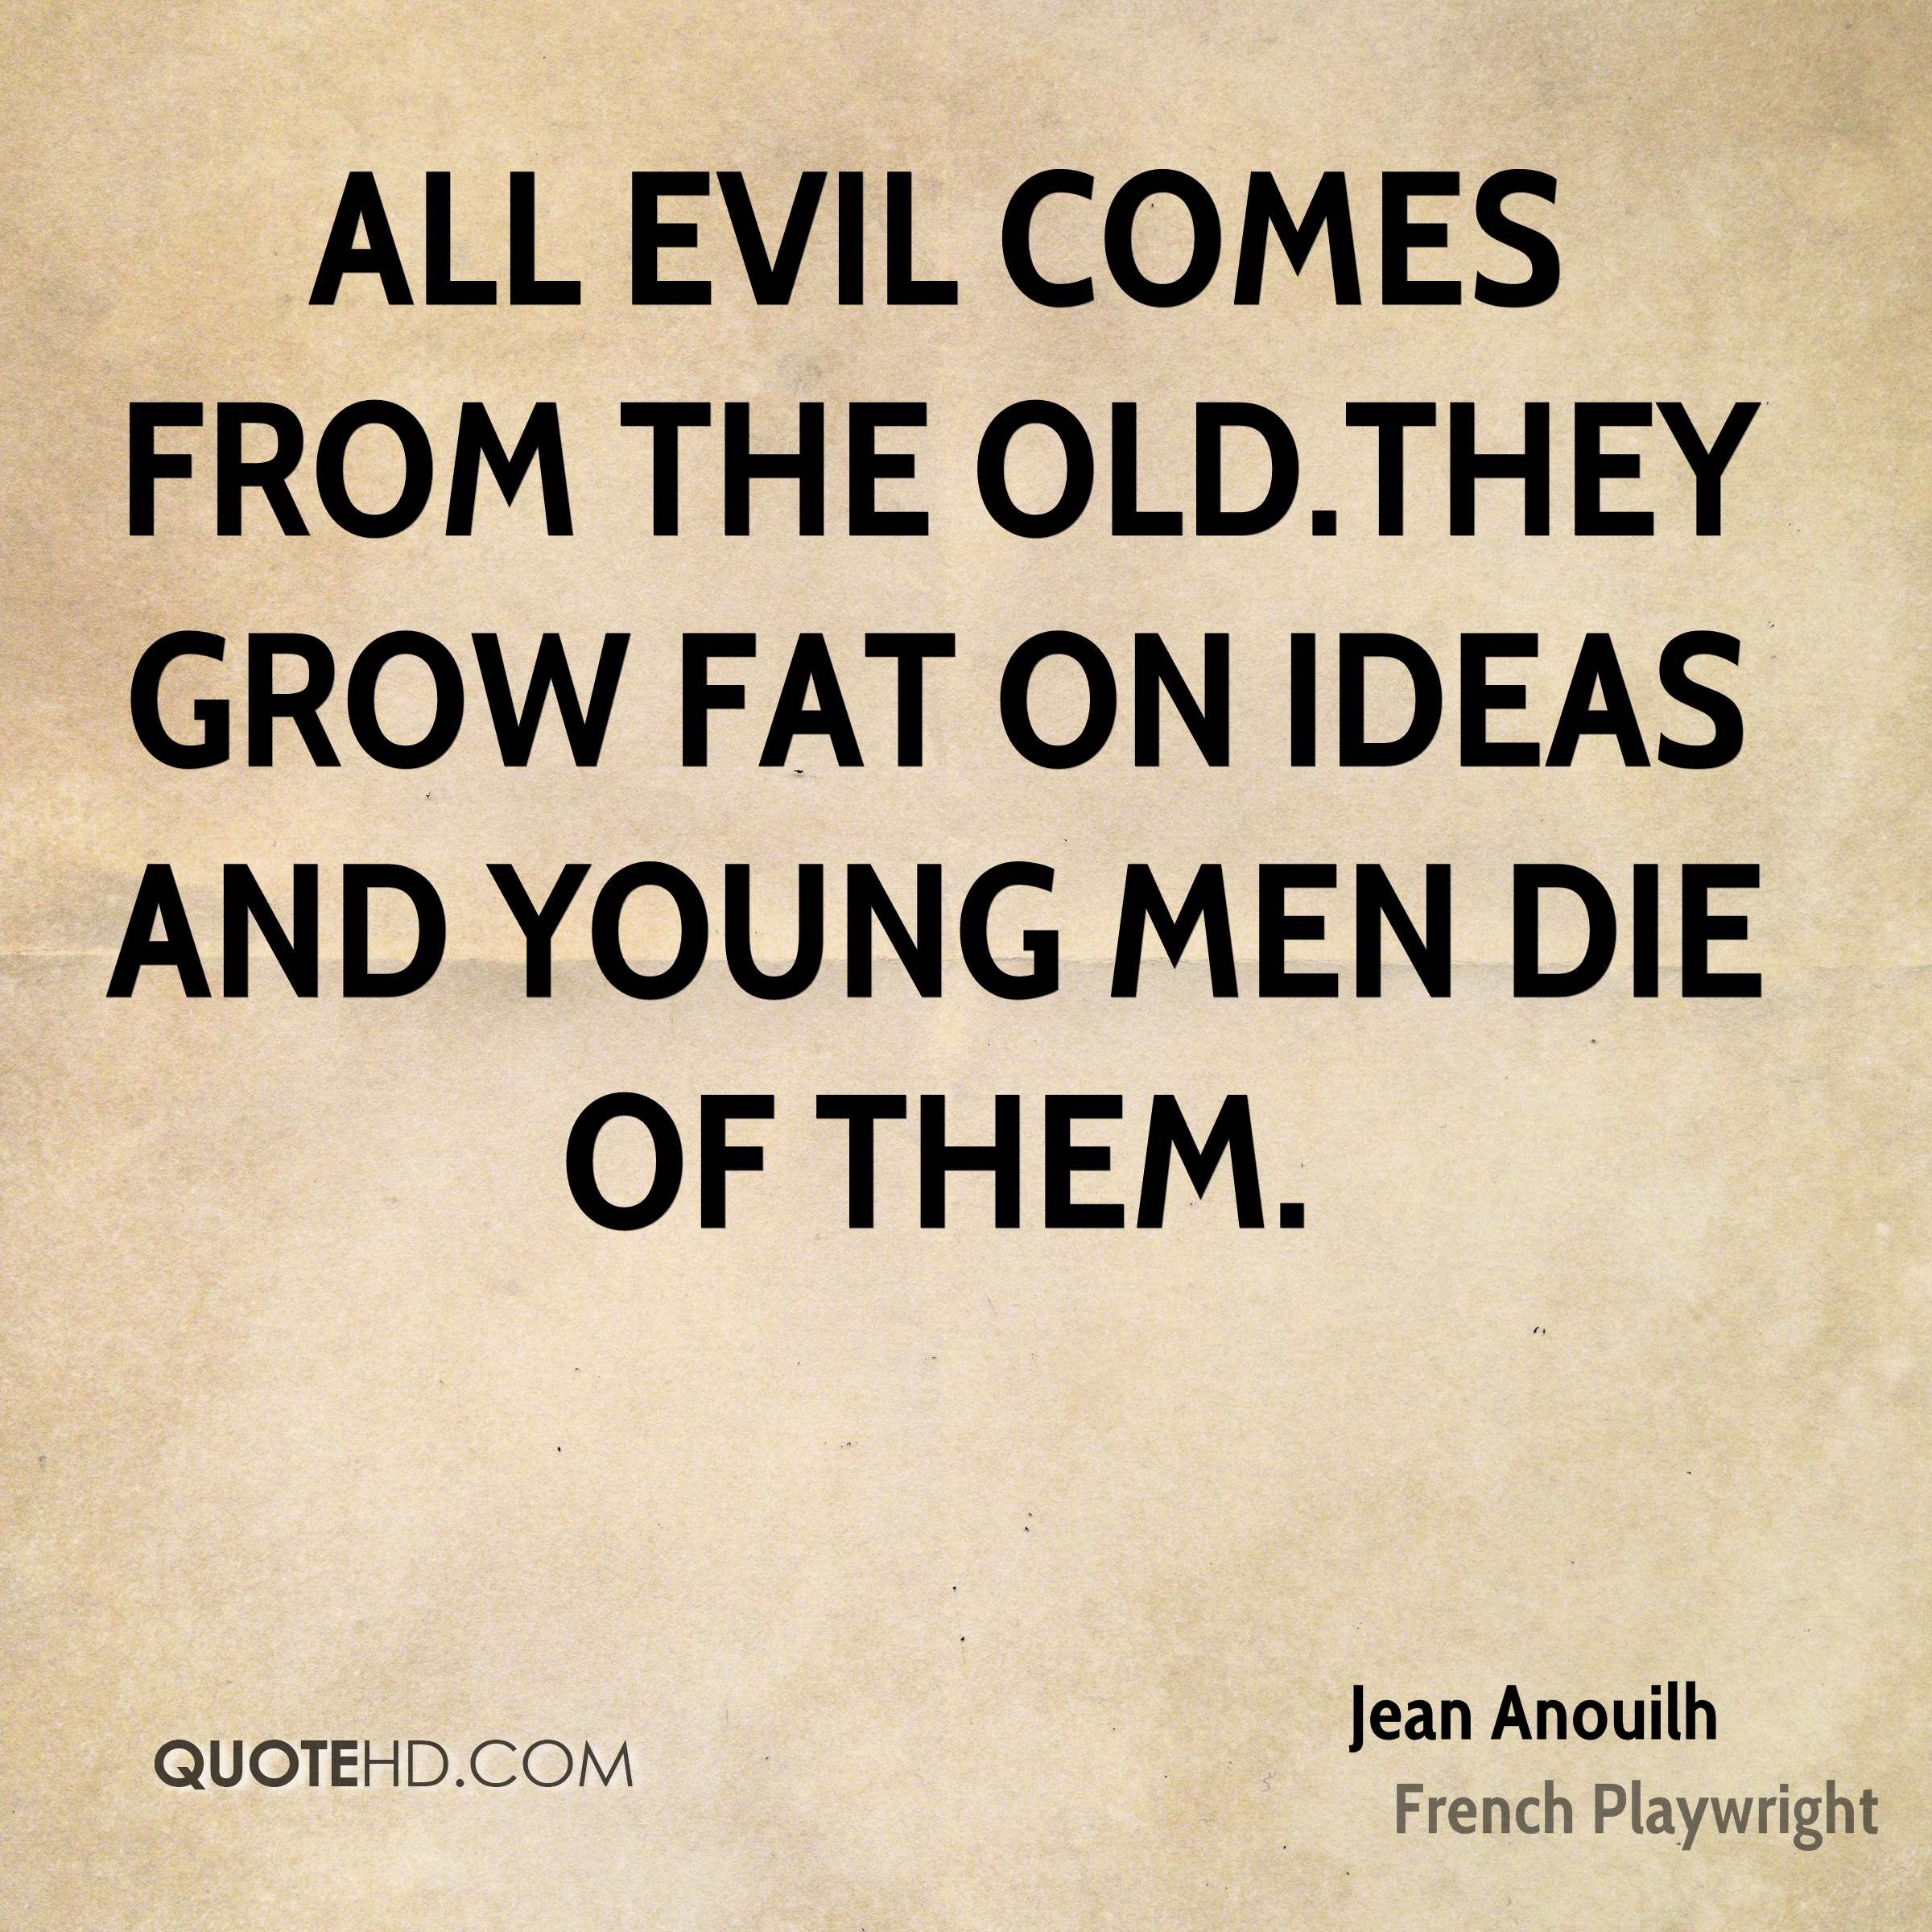 All evil comes from the old.They grow fat on ideas and young men die of them.